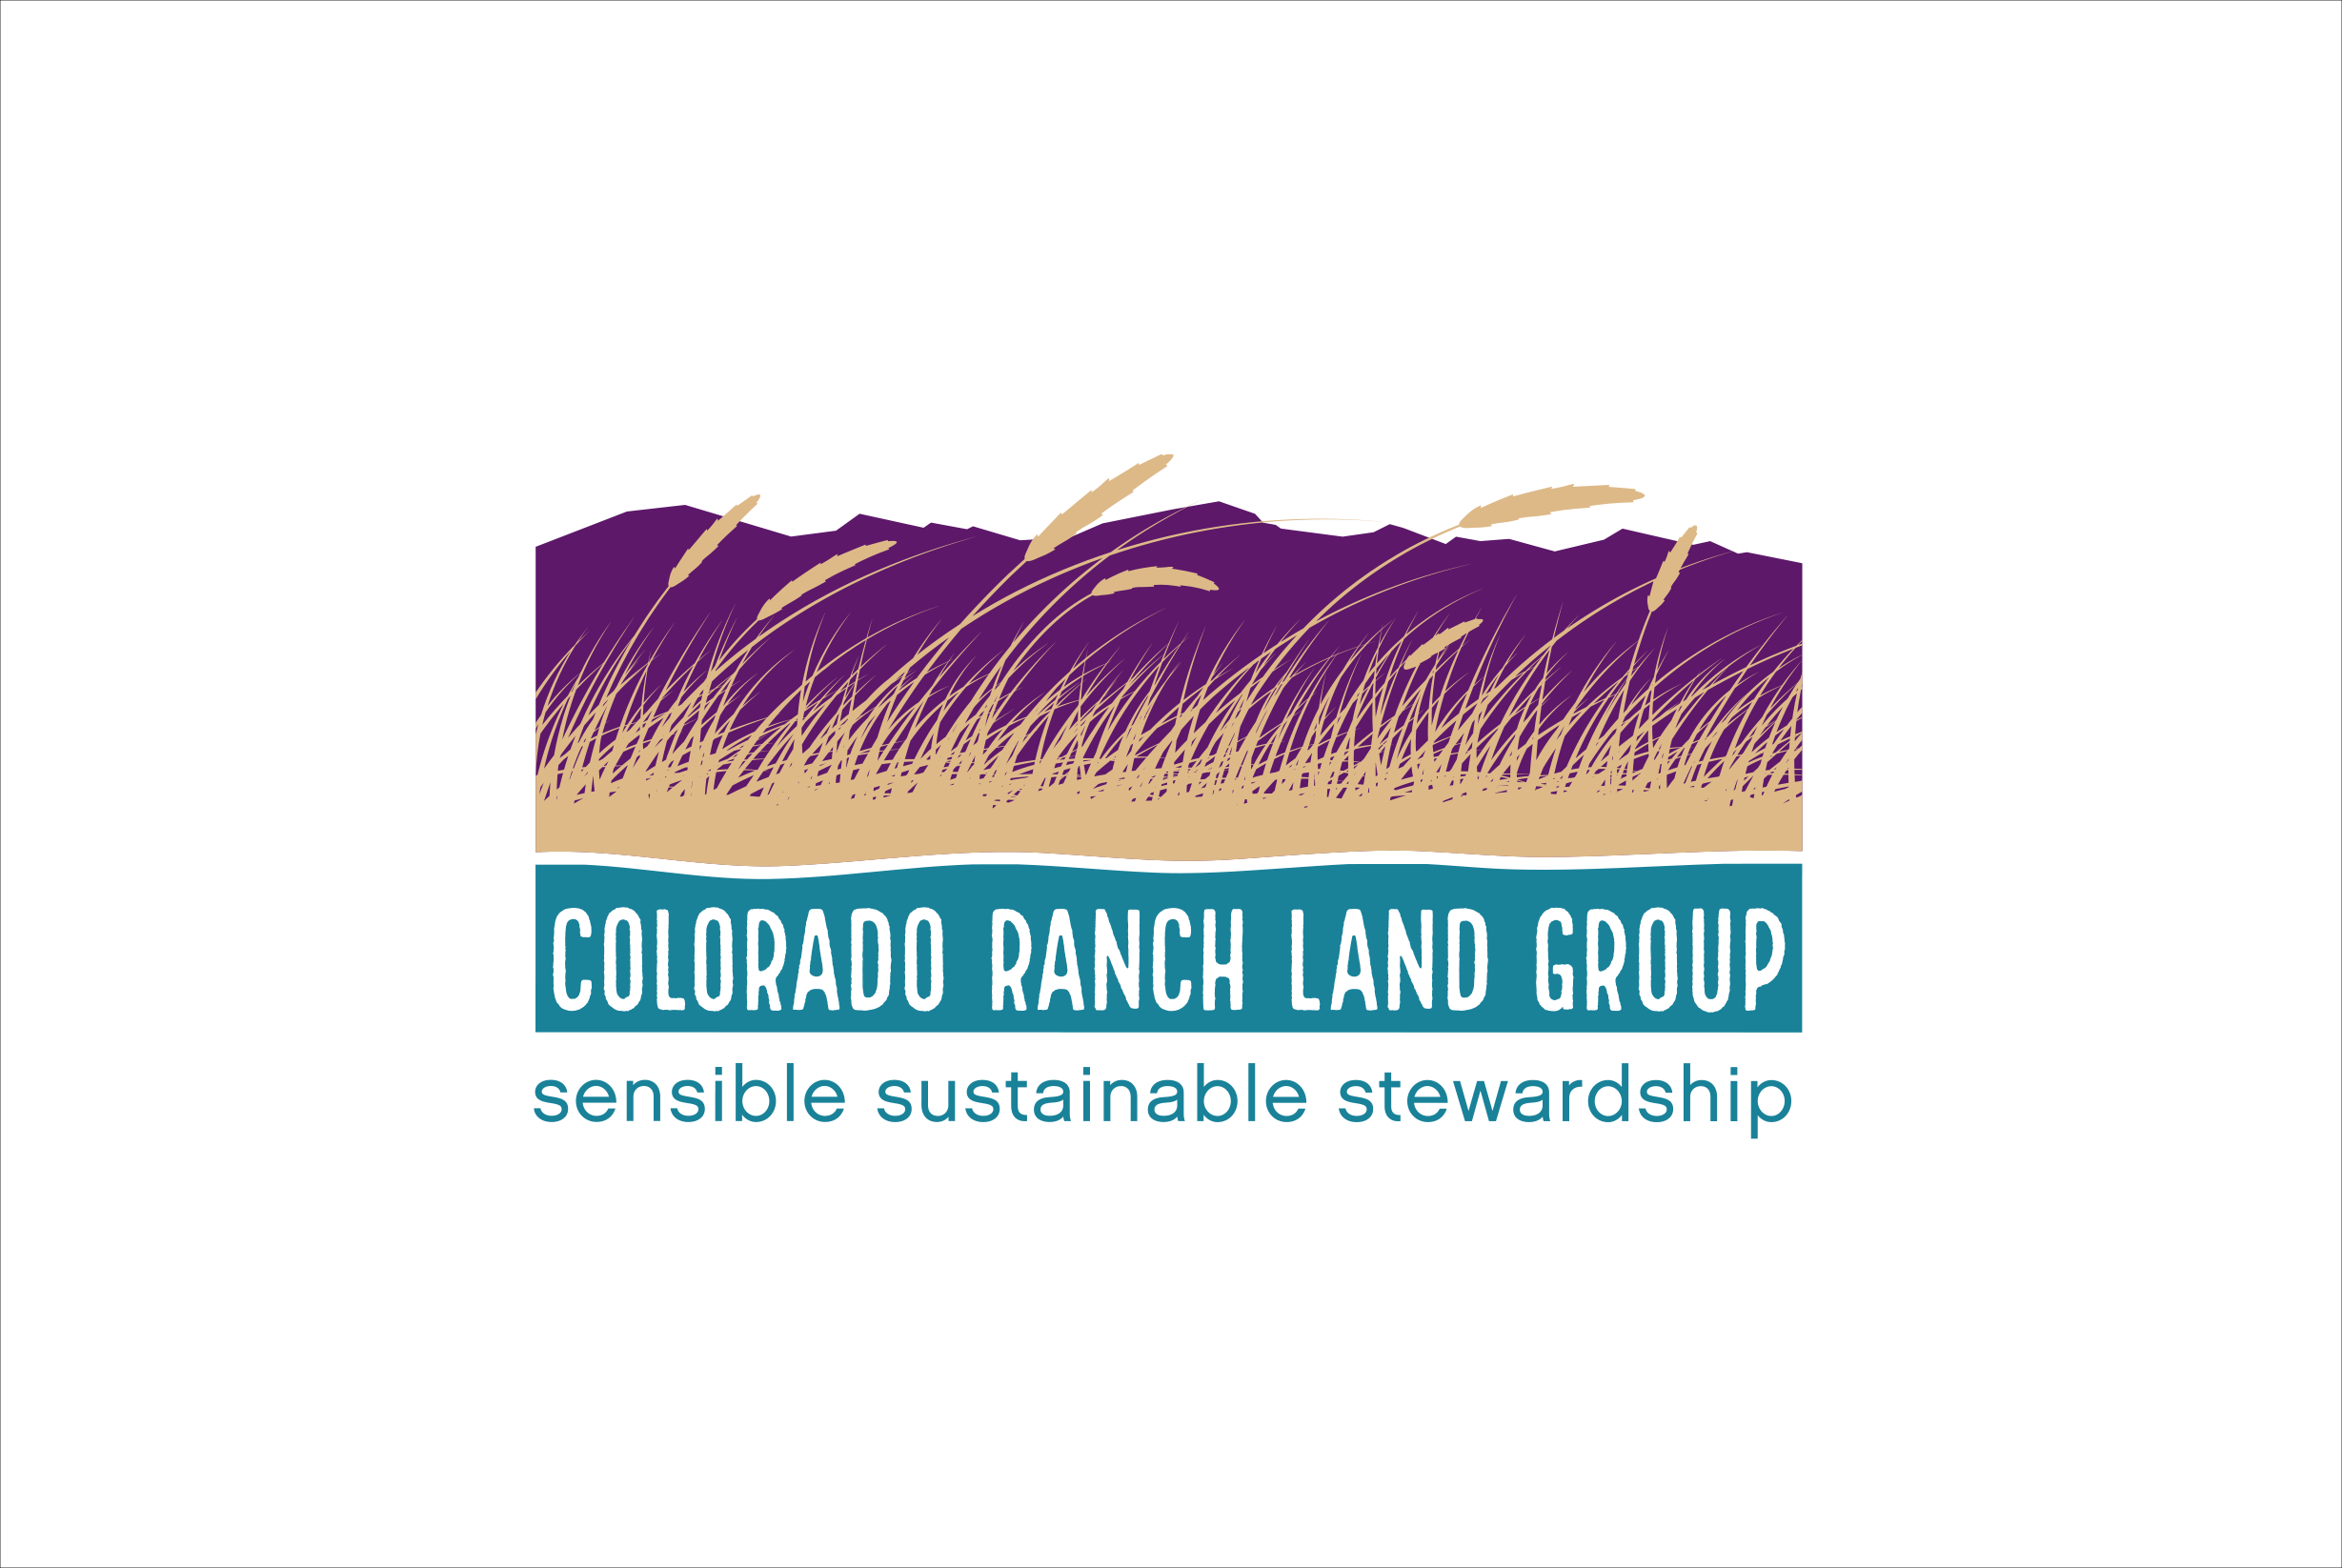 Colorado Ranch Land Group